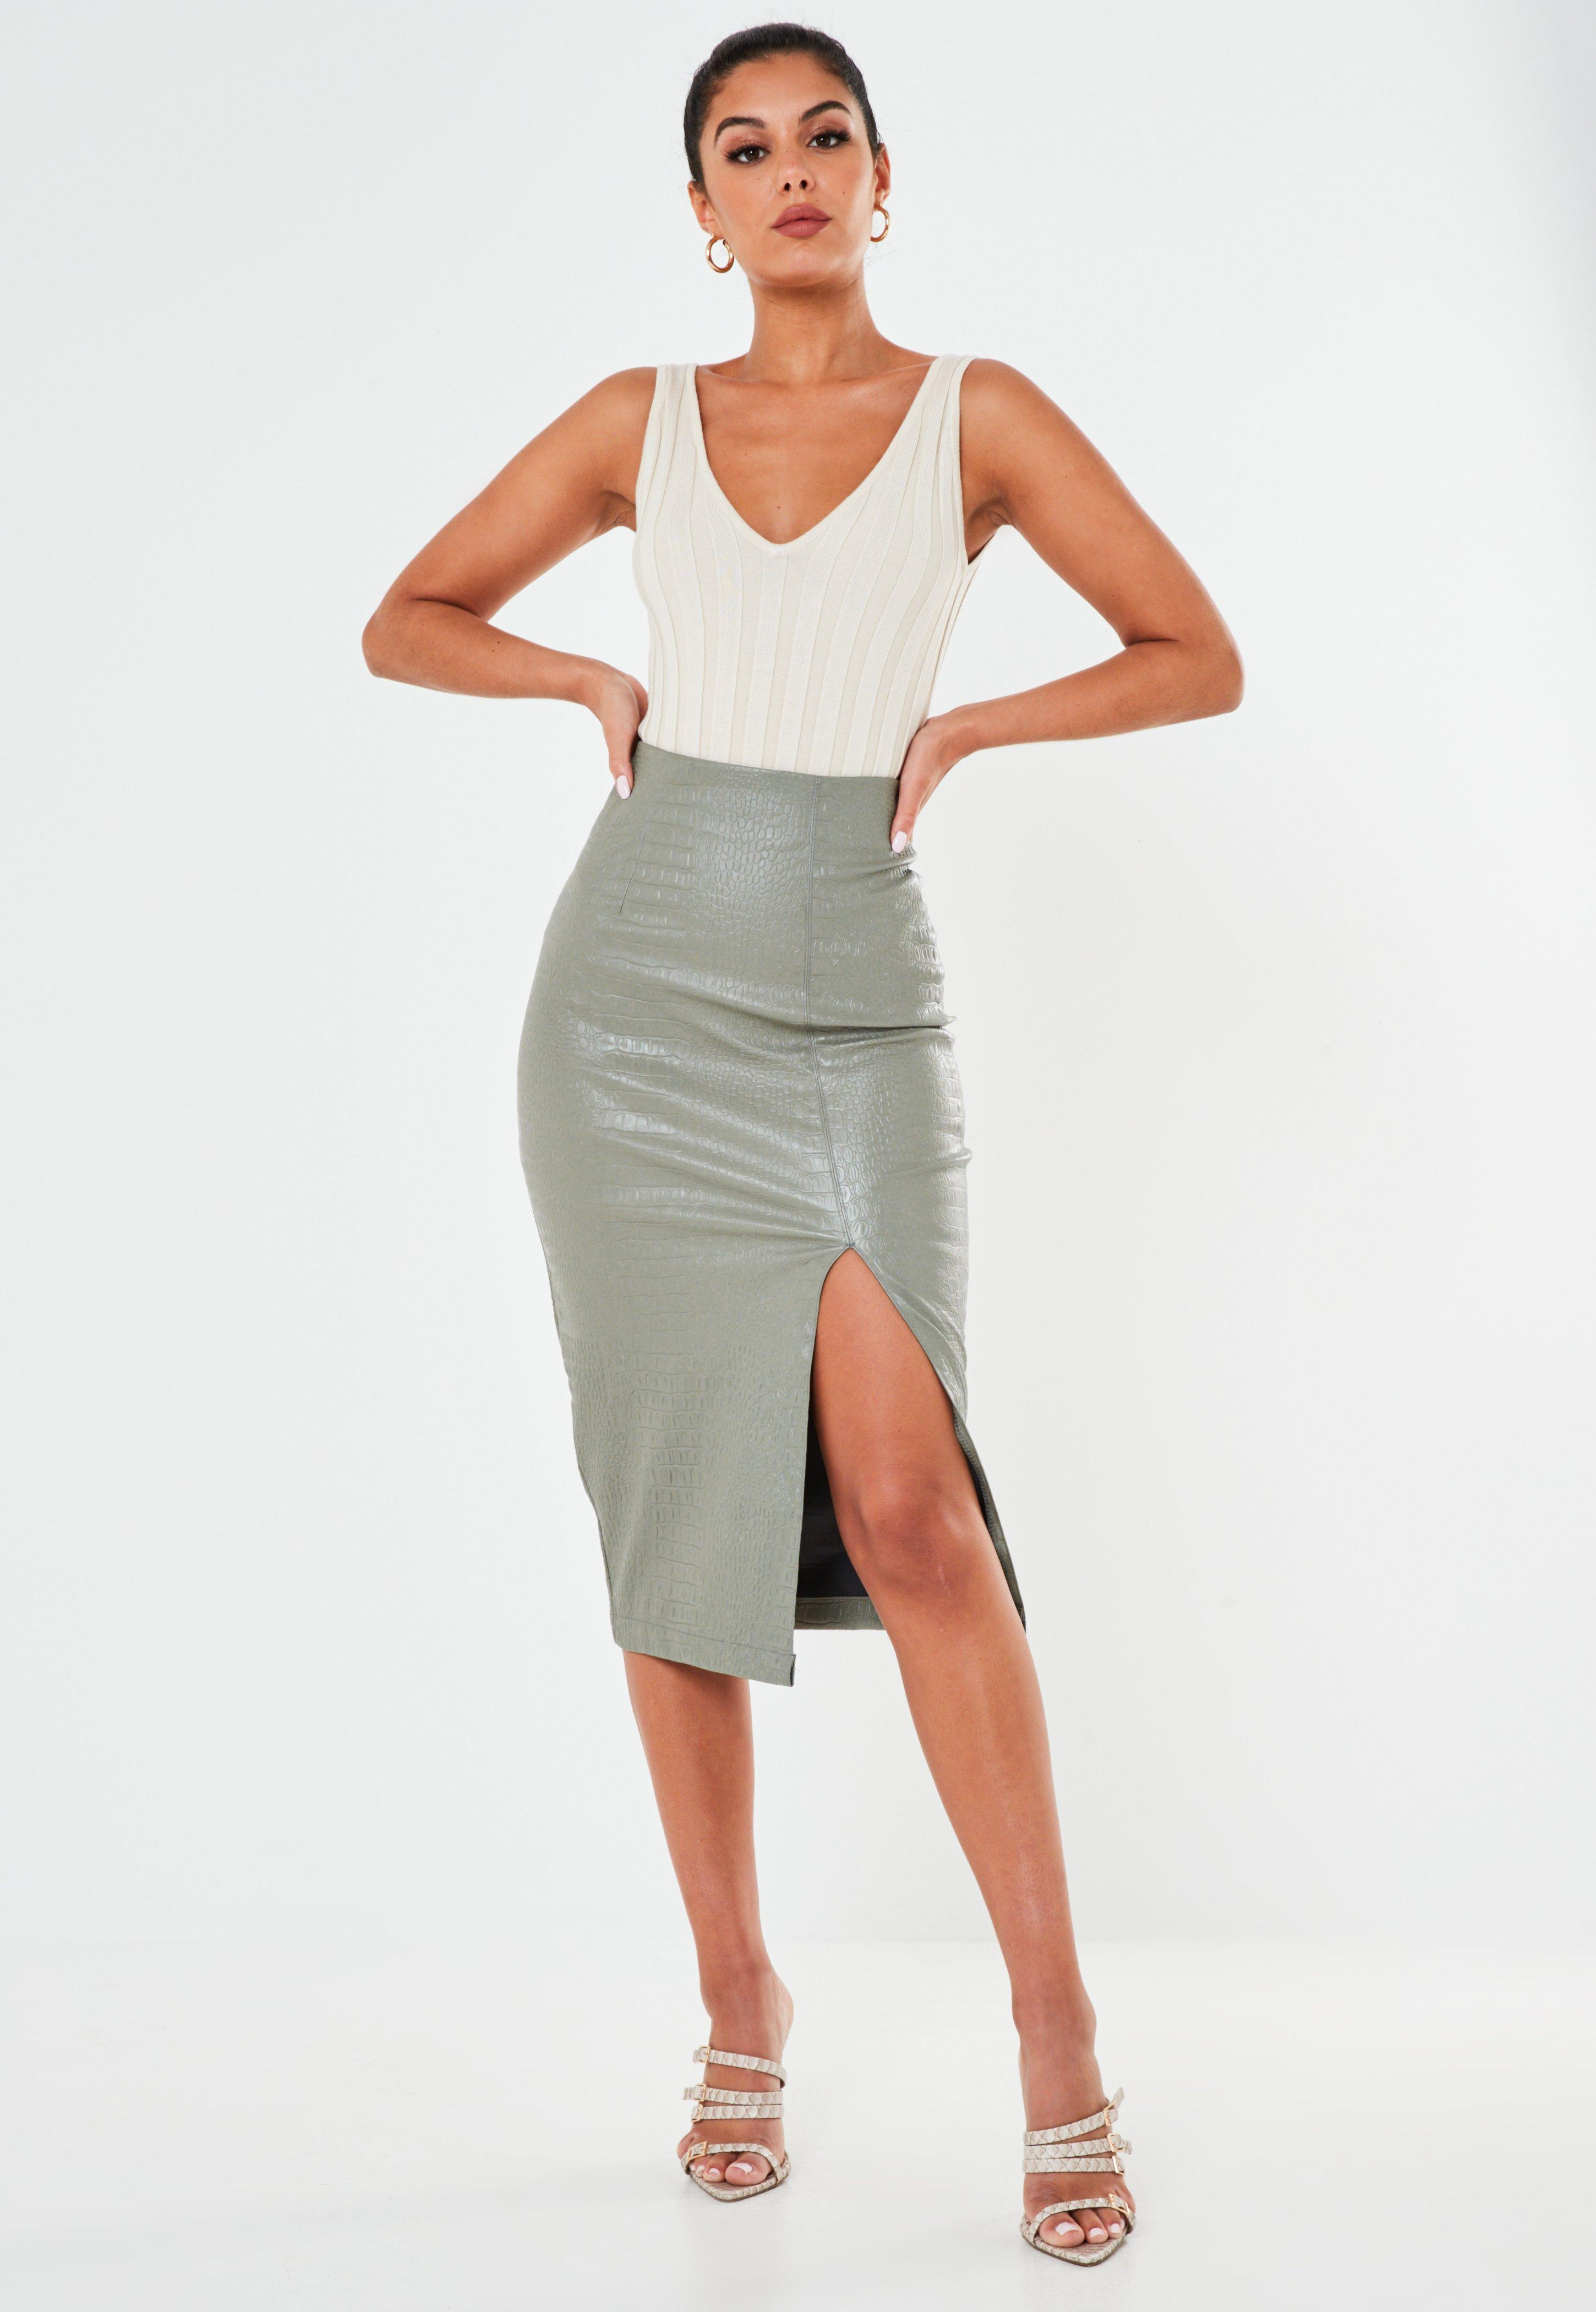 Image result for missguided green croc faux leather midi skirt